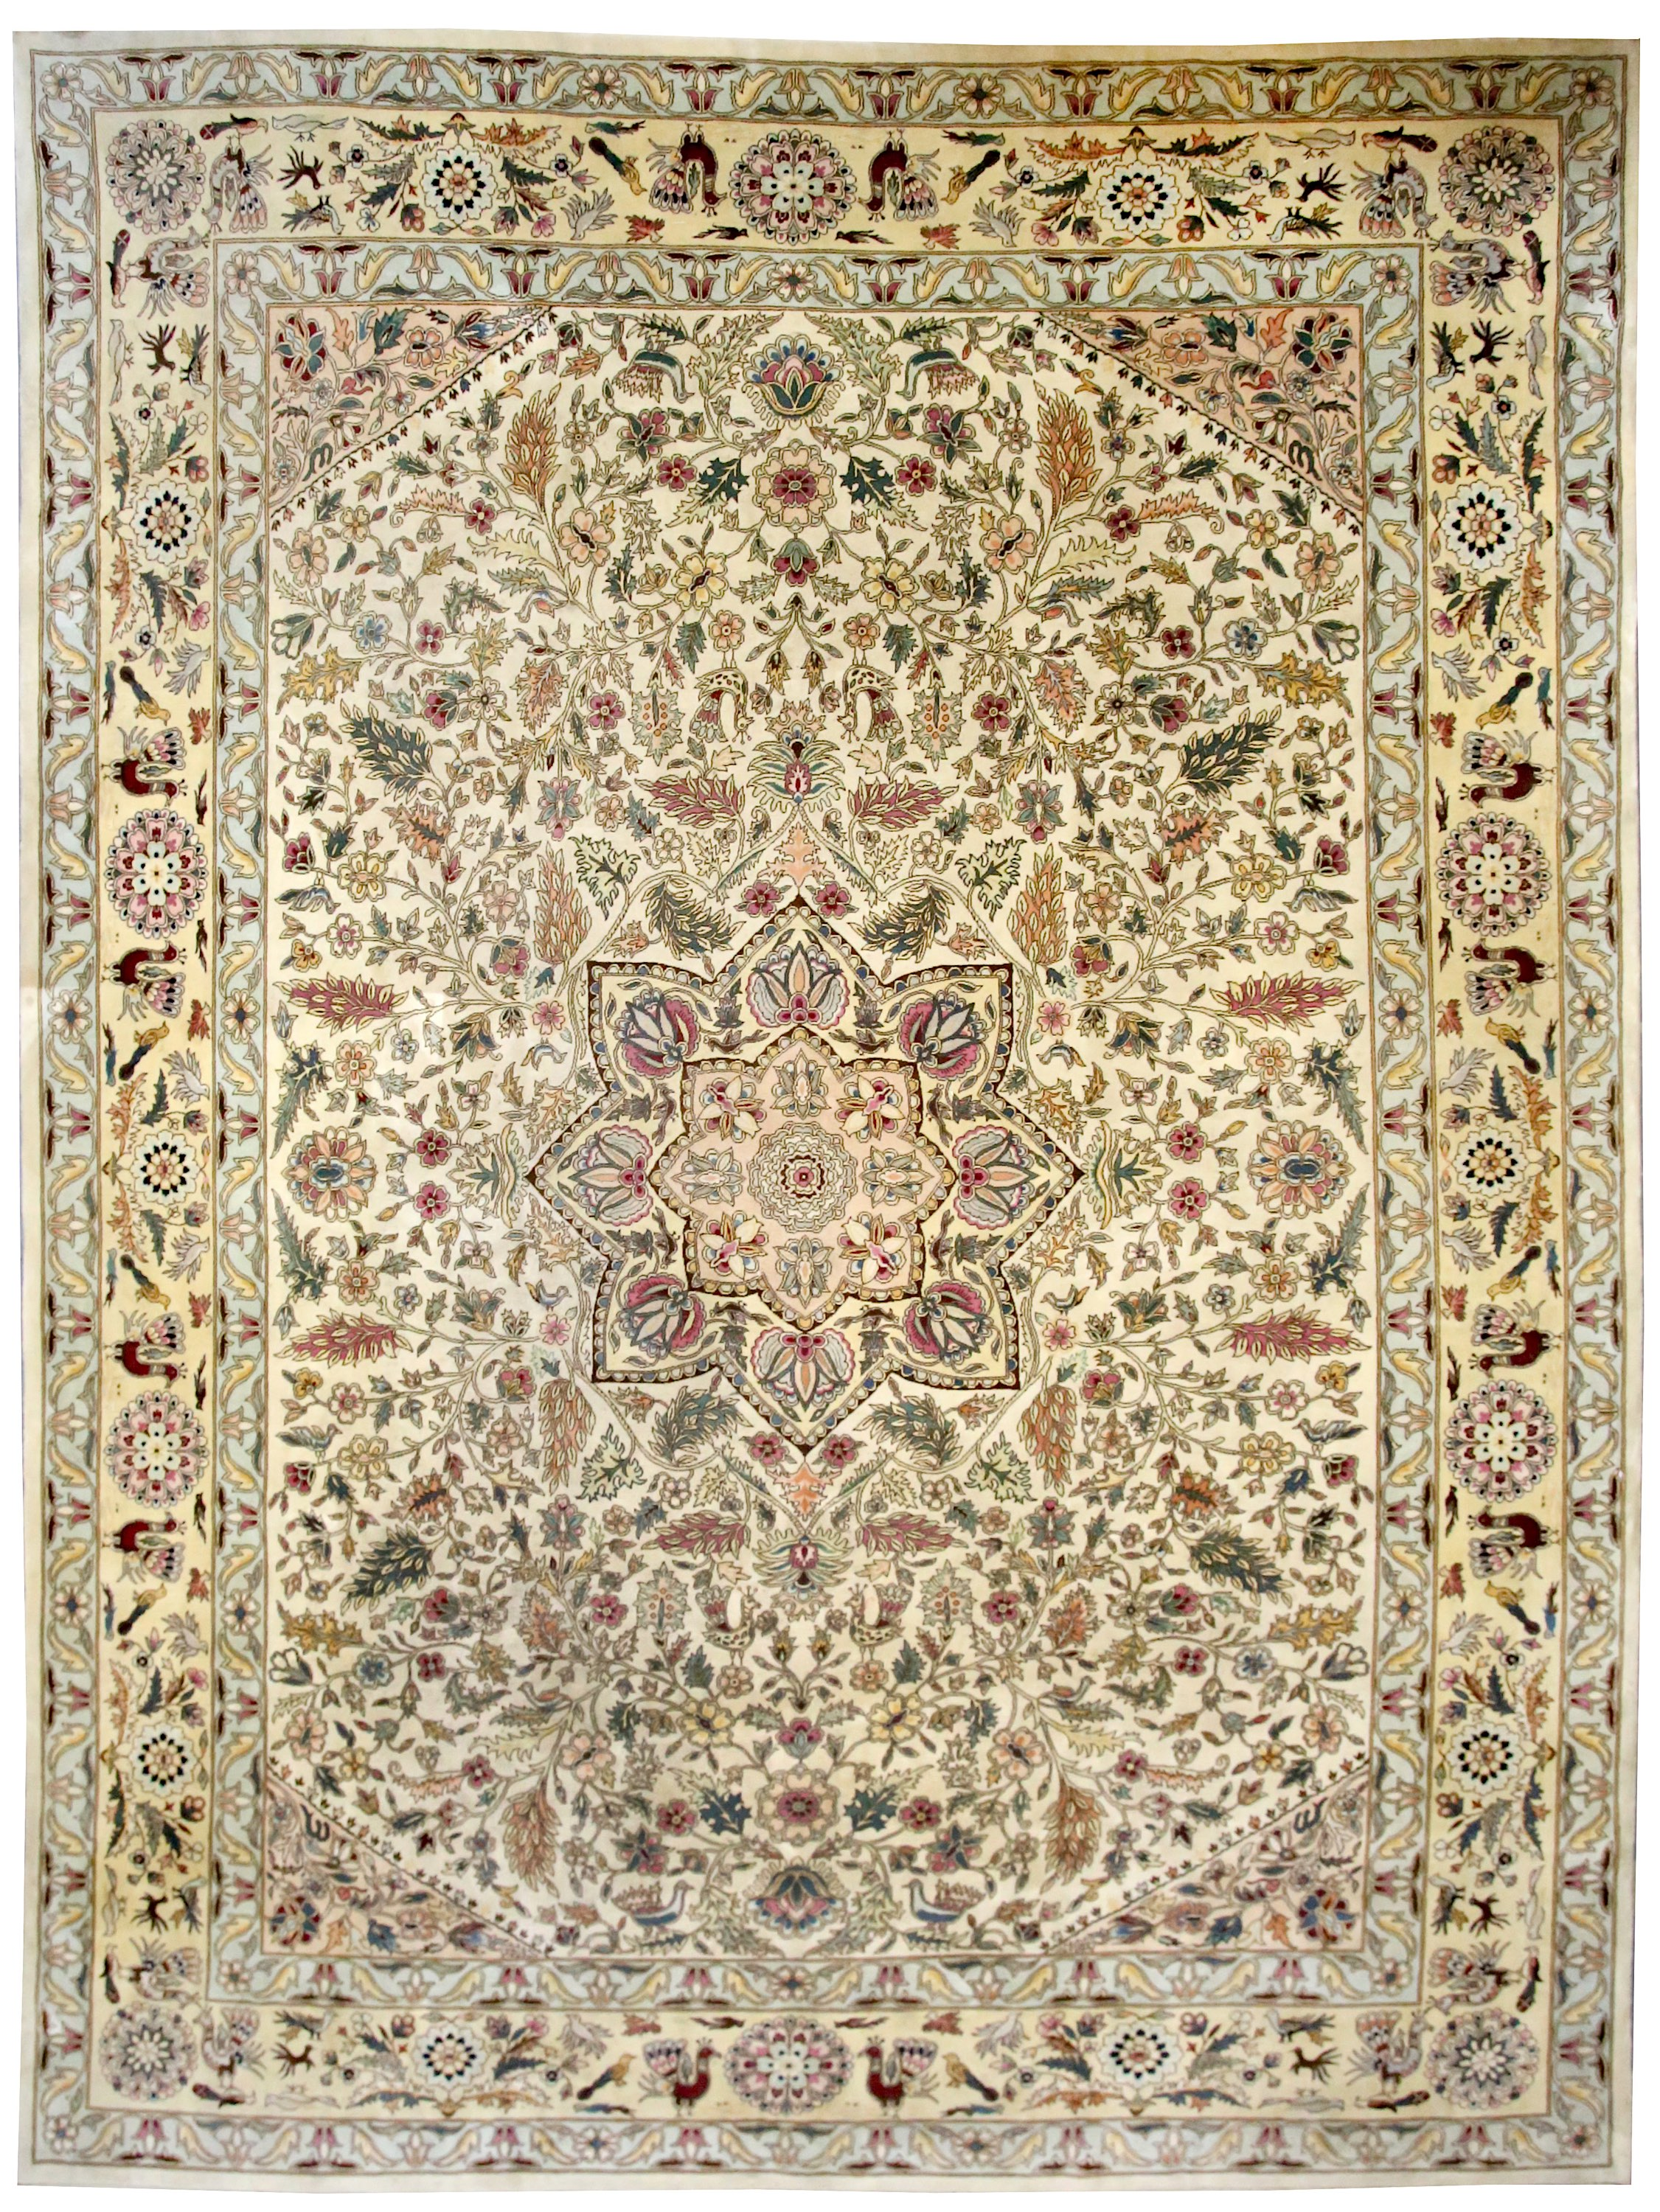 A FINE TABRIZ CARPET, NORTH-WEST PERSIA approx:13ft 6in  x